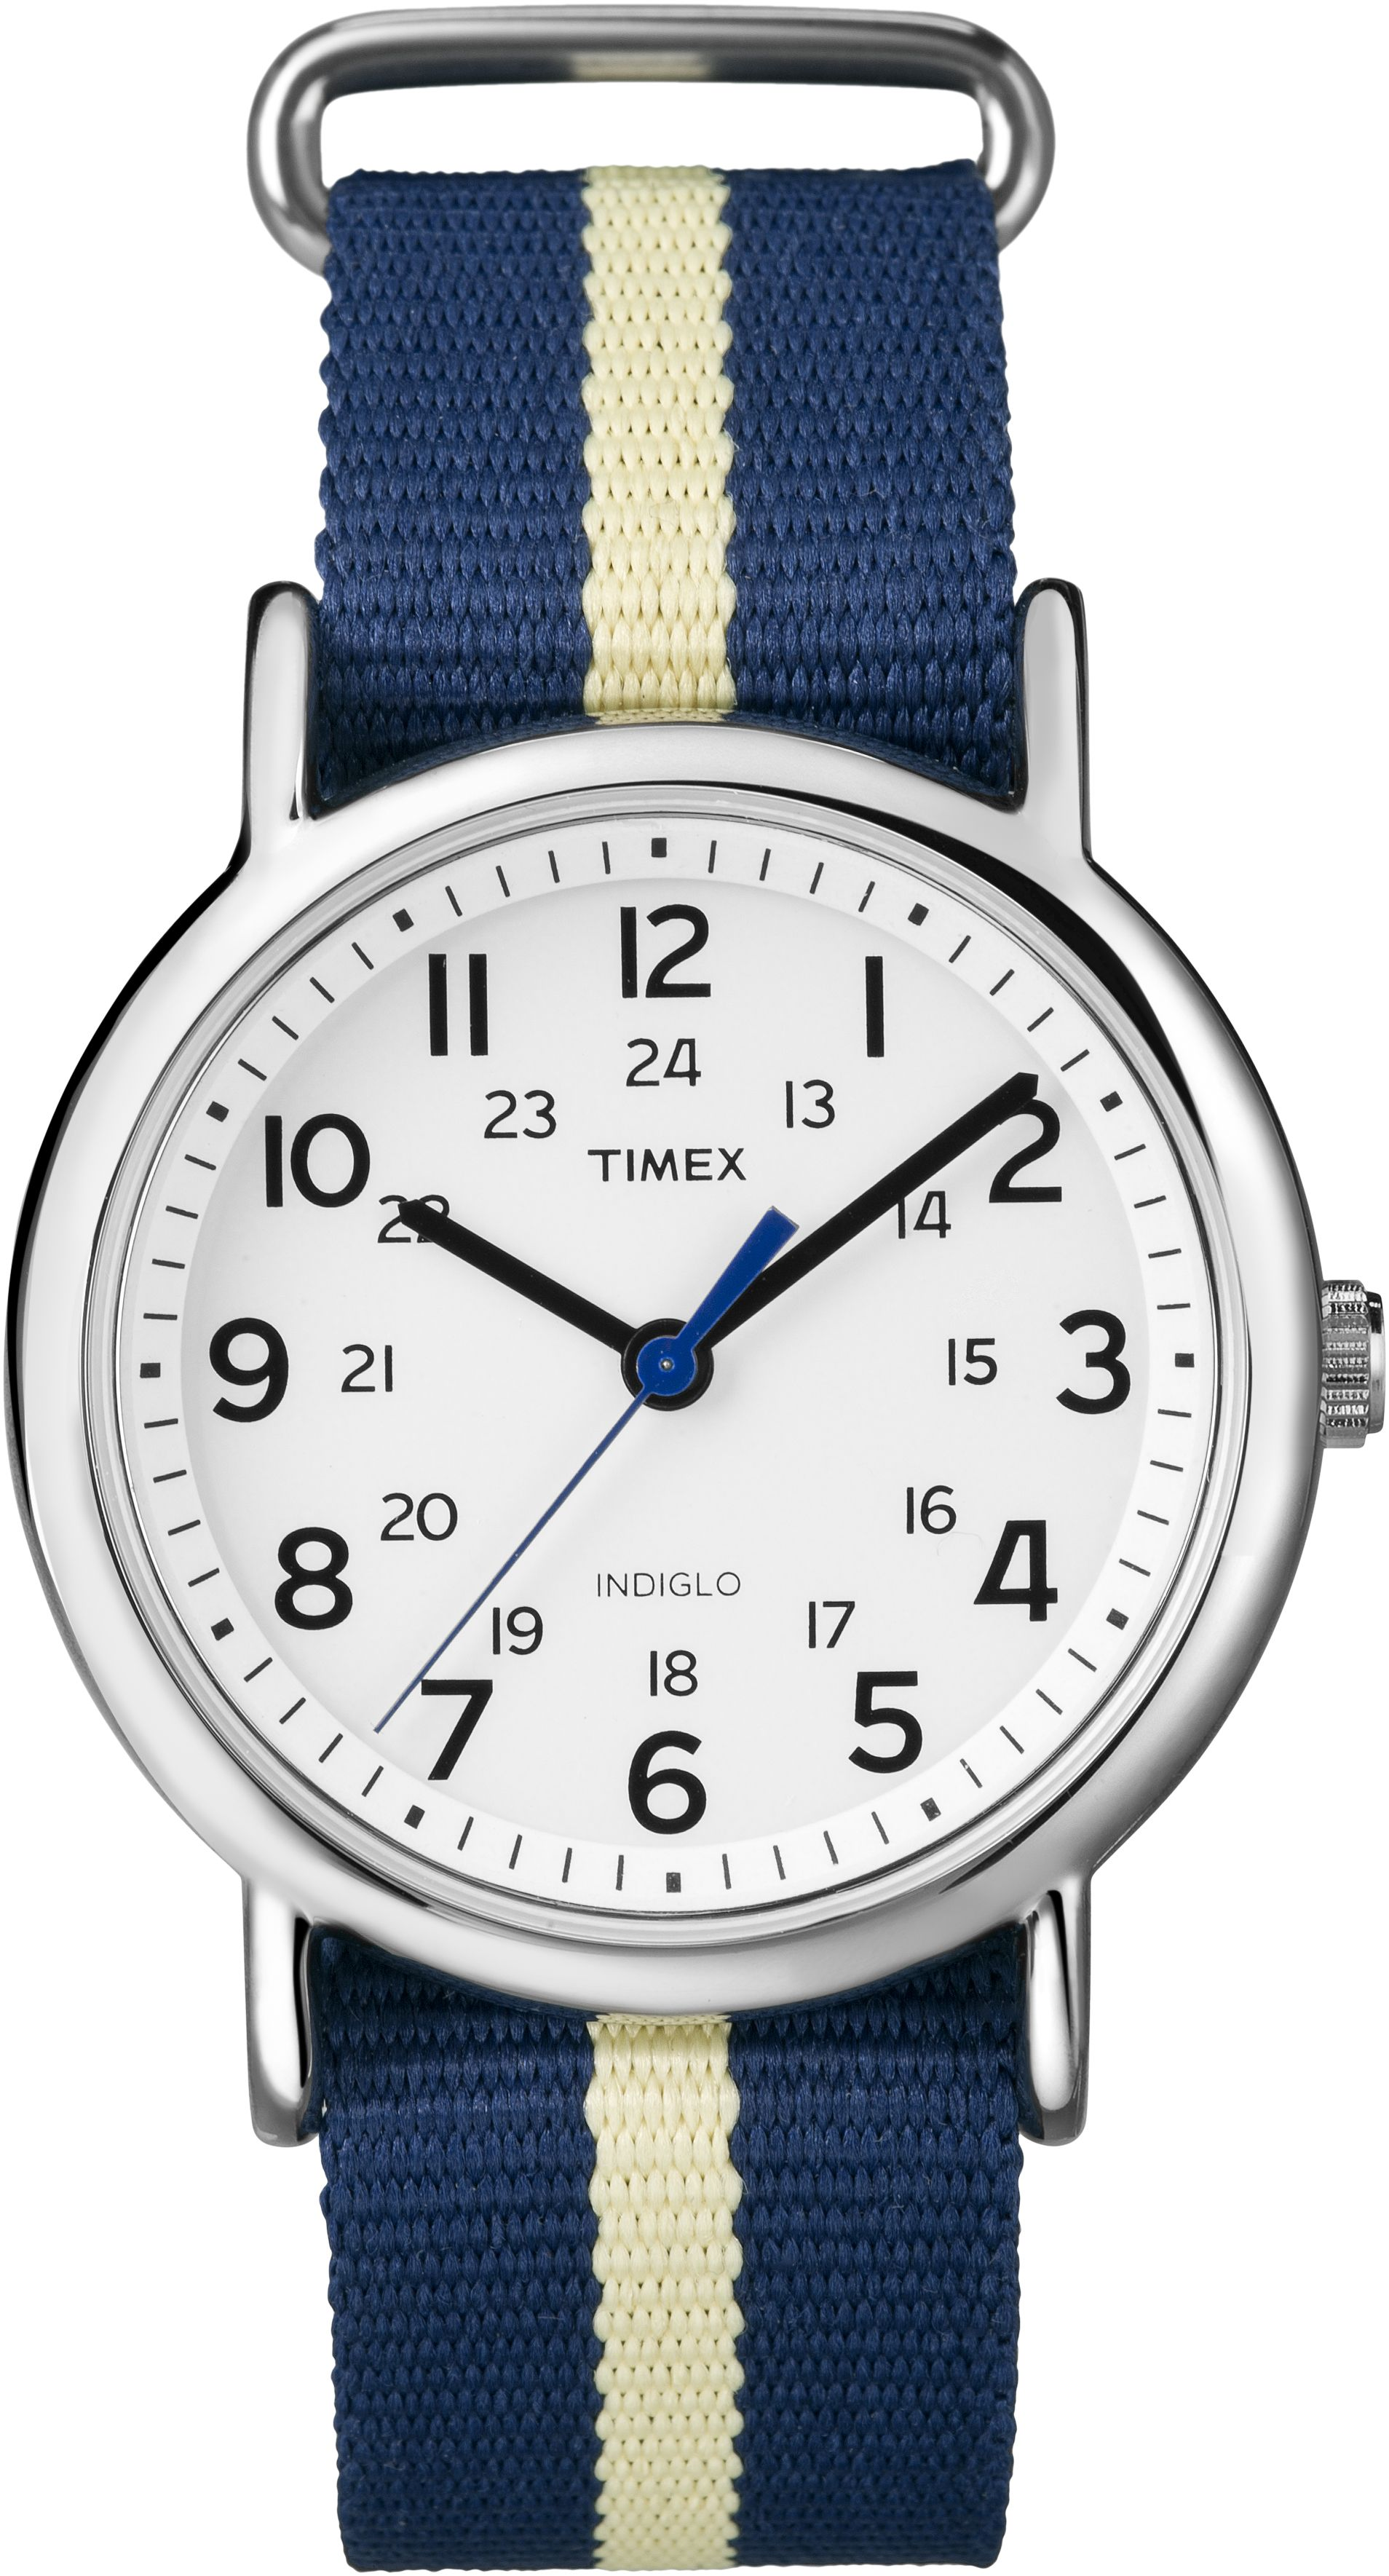 dapper the preppy look tag tumblr watches book